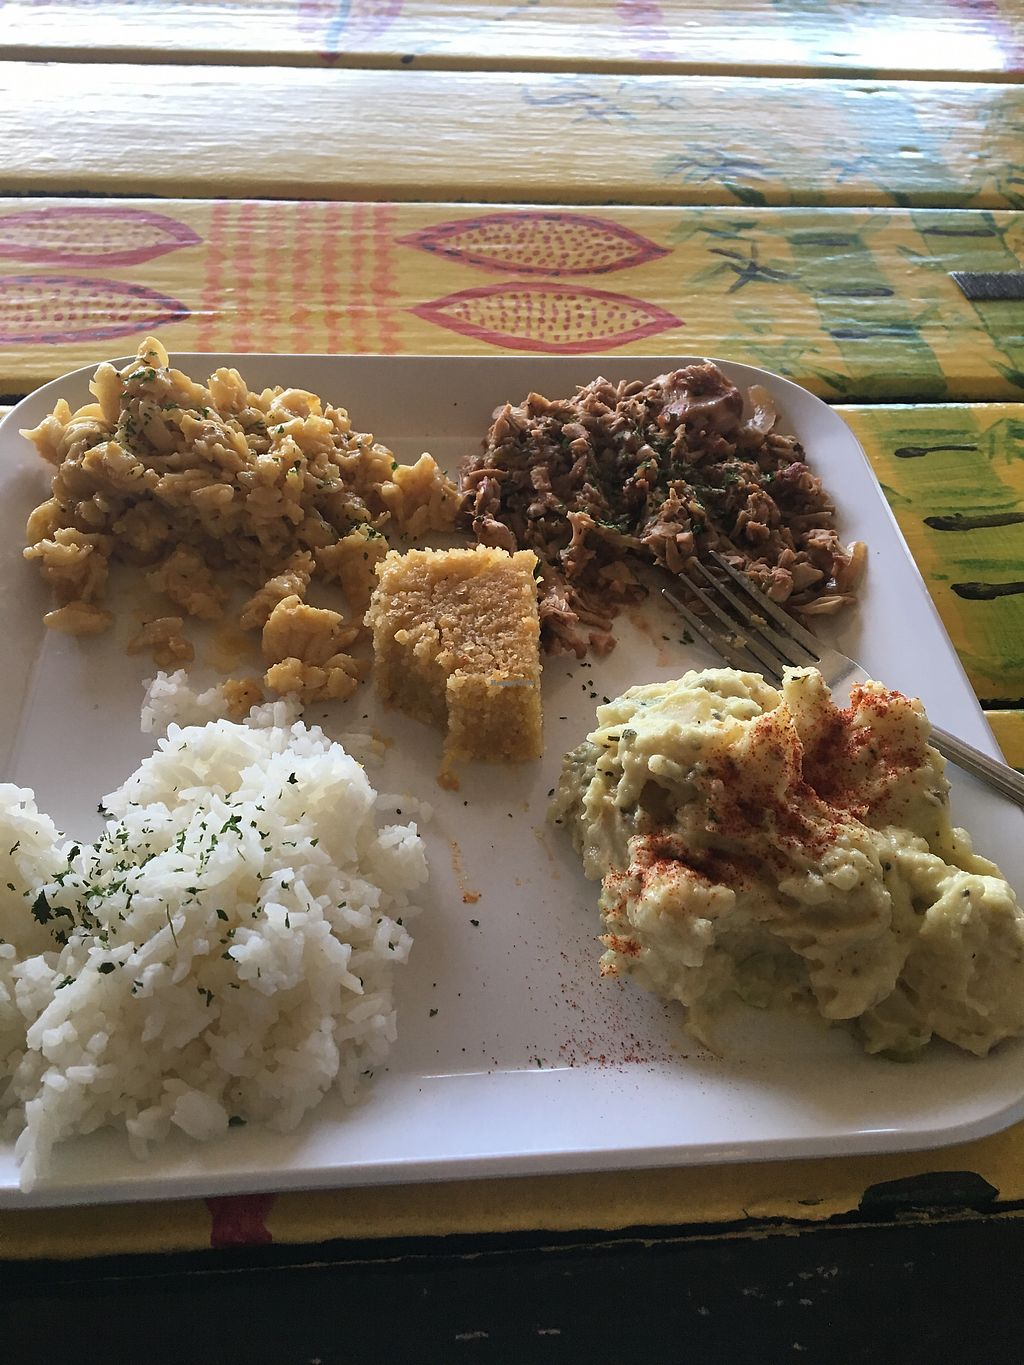 "Photo of Souly Vegan Cafe  by <a href=""/members/profile/EmilySuttonTaylor"">EmilySuttonTaylor</a> <br/>Jackfruit BBQ, potato salad, Mac and cheese, rice and cornbread  <br/> September 21, 2017  - <a href='/contact/abuse/image/87664/306943'>Report</a>"